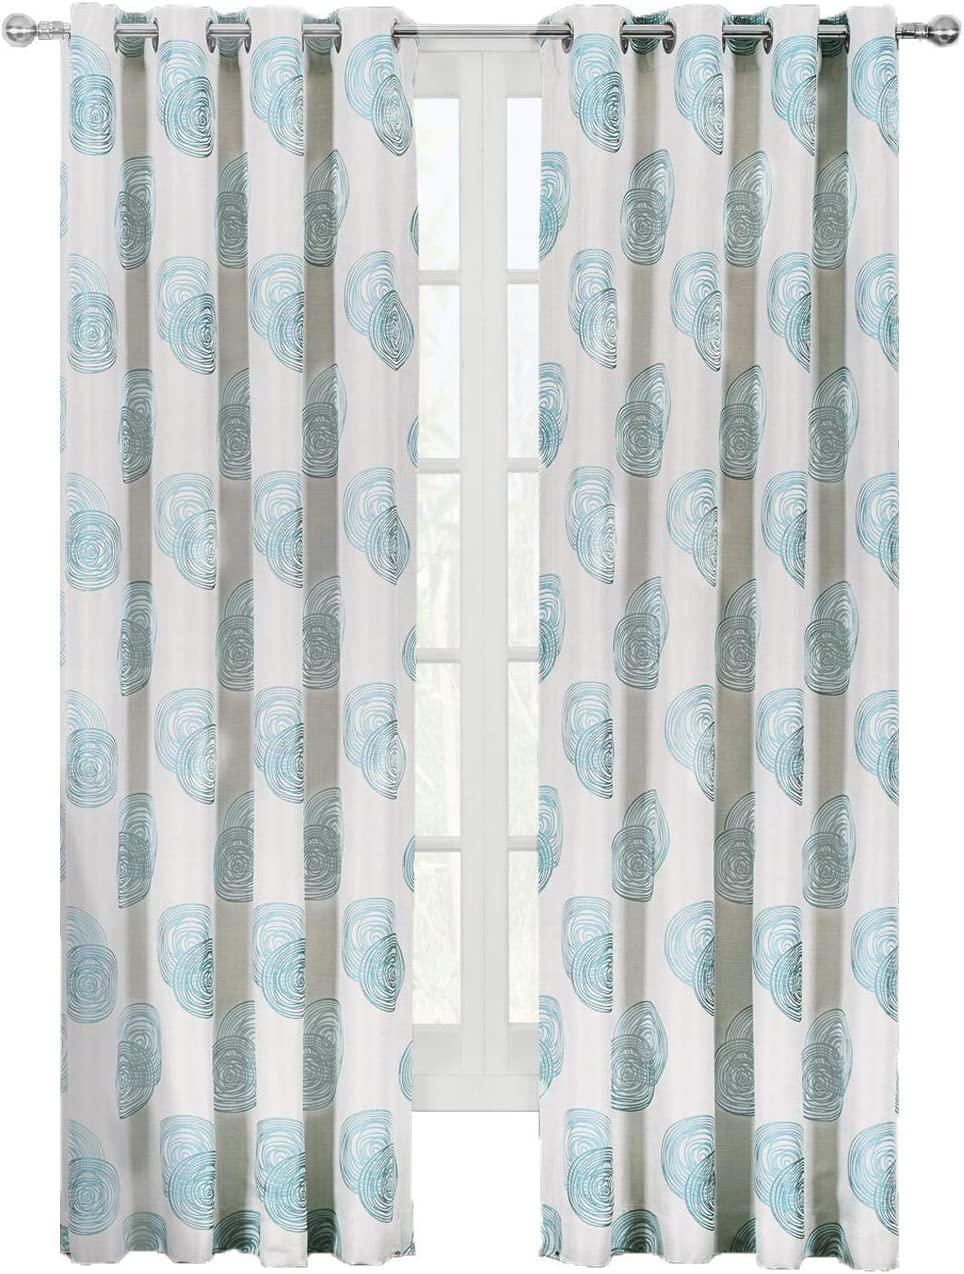 2 Panels Lafayette Modern Abstract Jacquard Grommet Window Drapes /& Curtains